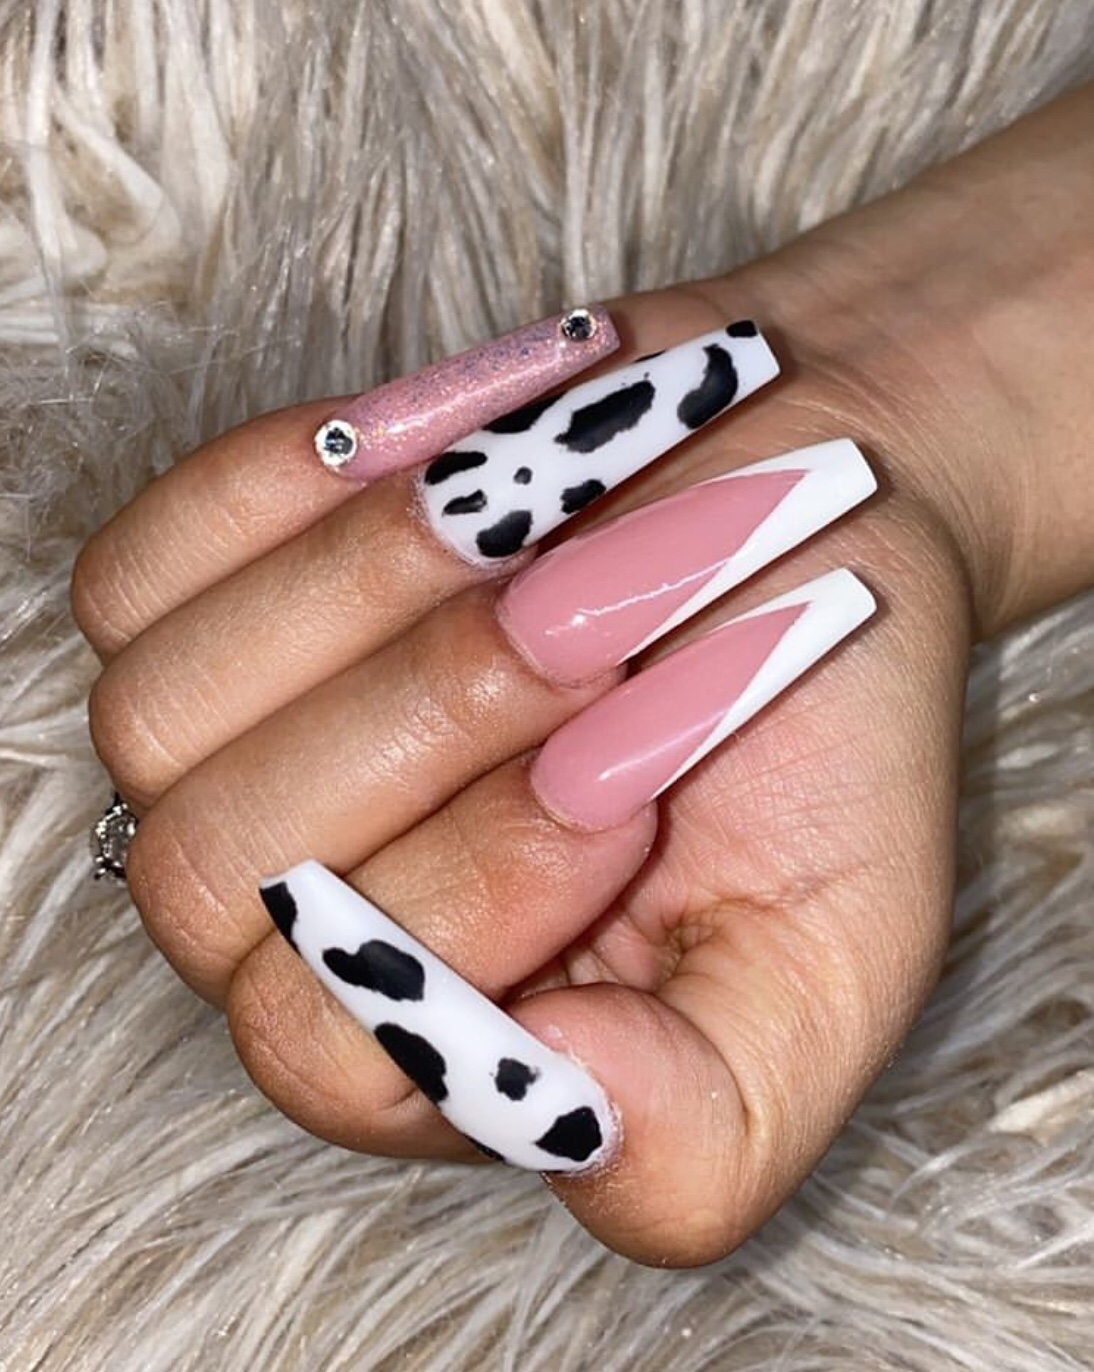 50 Glam Nail Designs For Prom 2020 The Glossychic